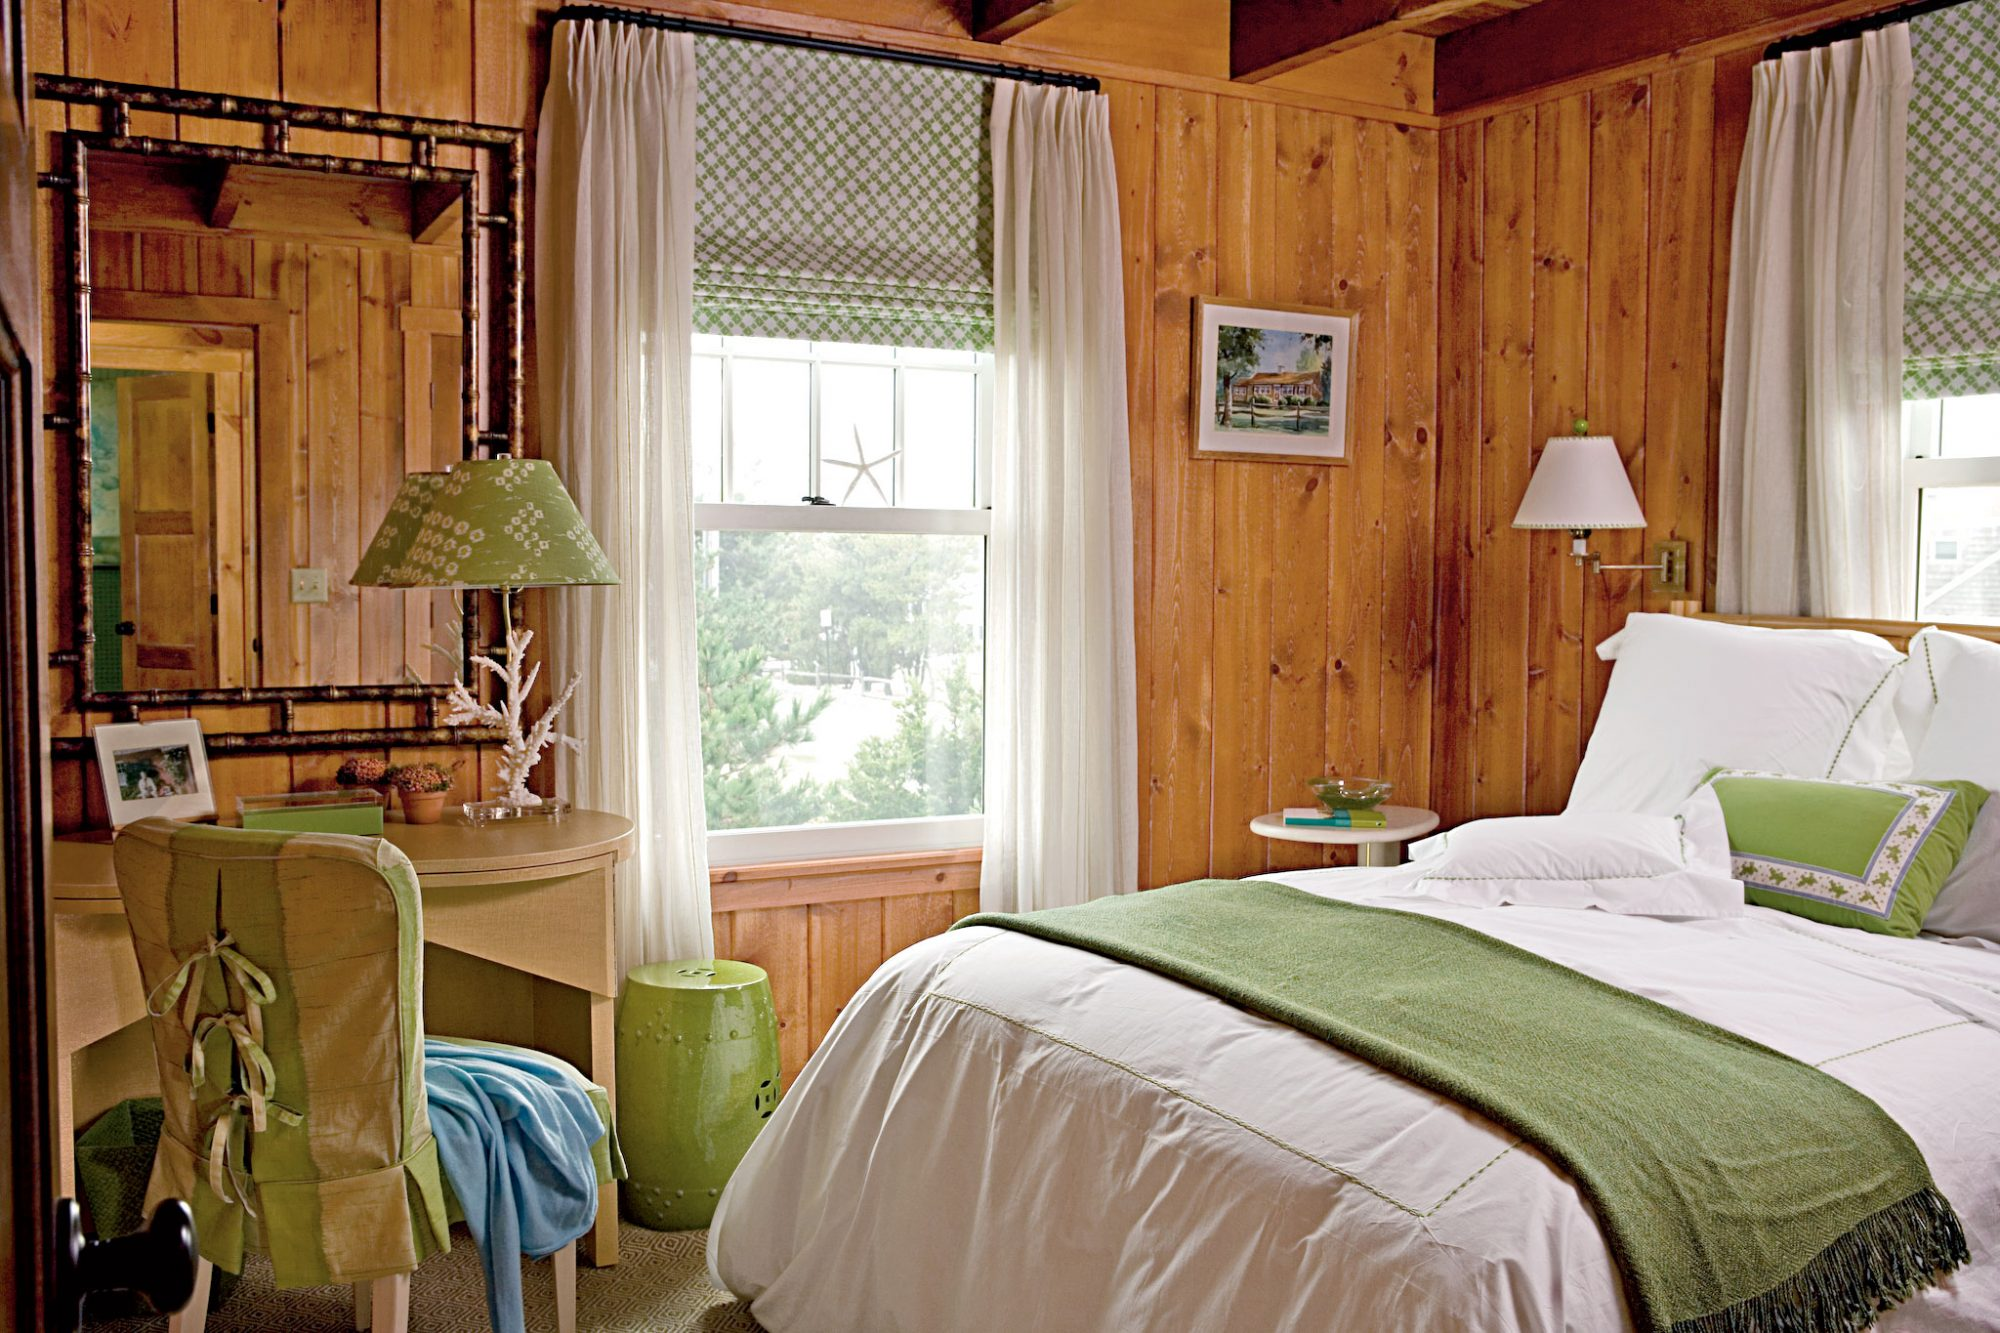 wood-paneled bedroom with accents of kiwi green used (in a blanket at the foot of the bed)